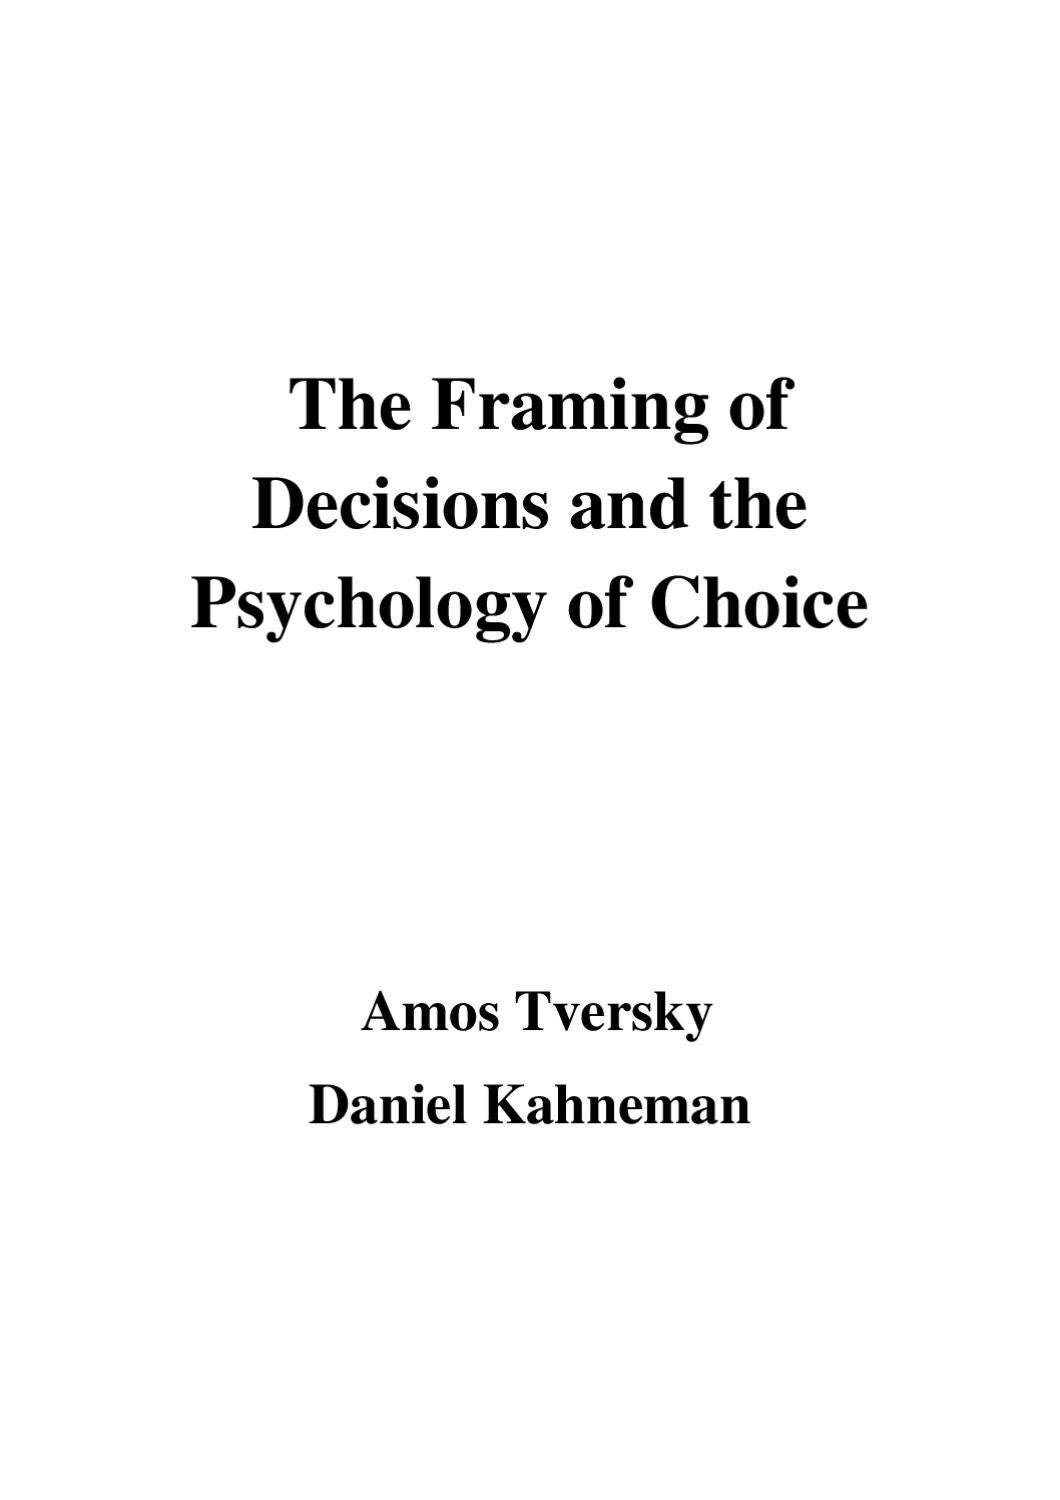 The Framing of Decisions and the Psychology of Choice by